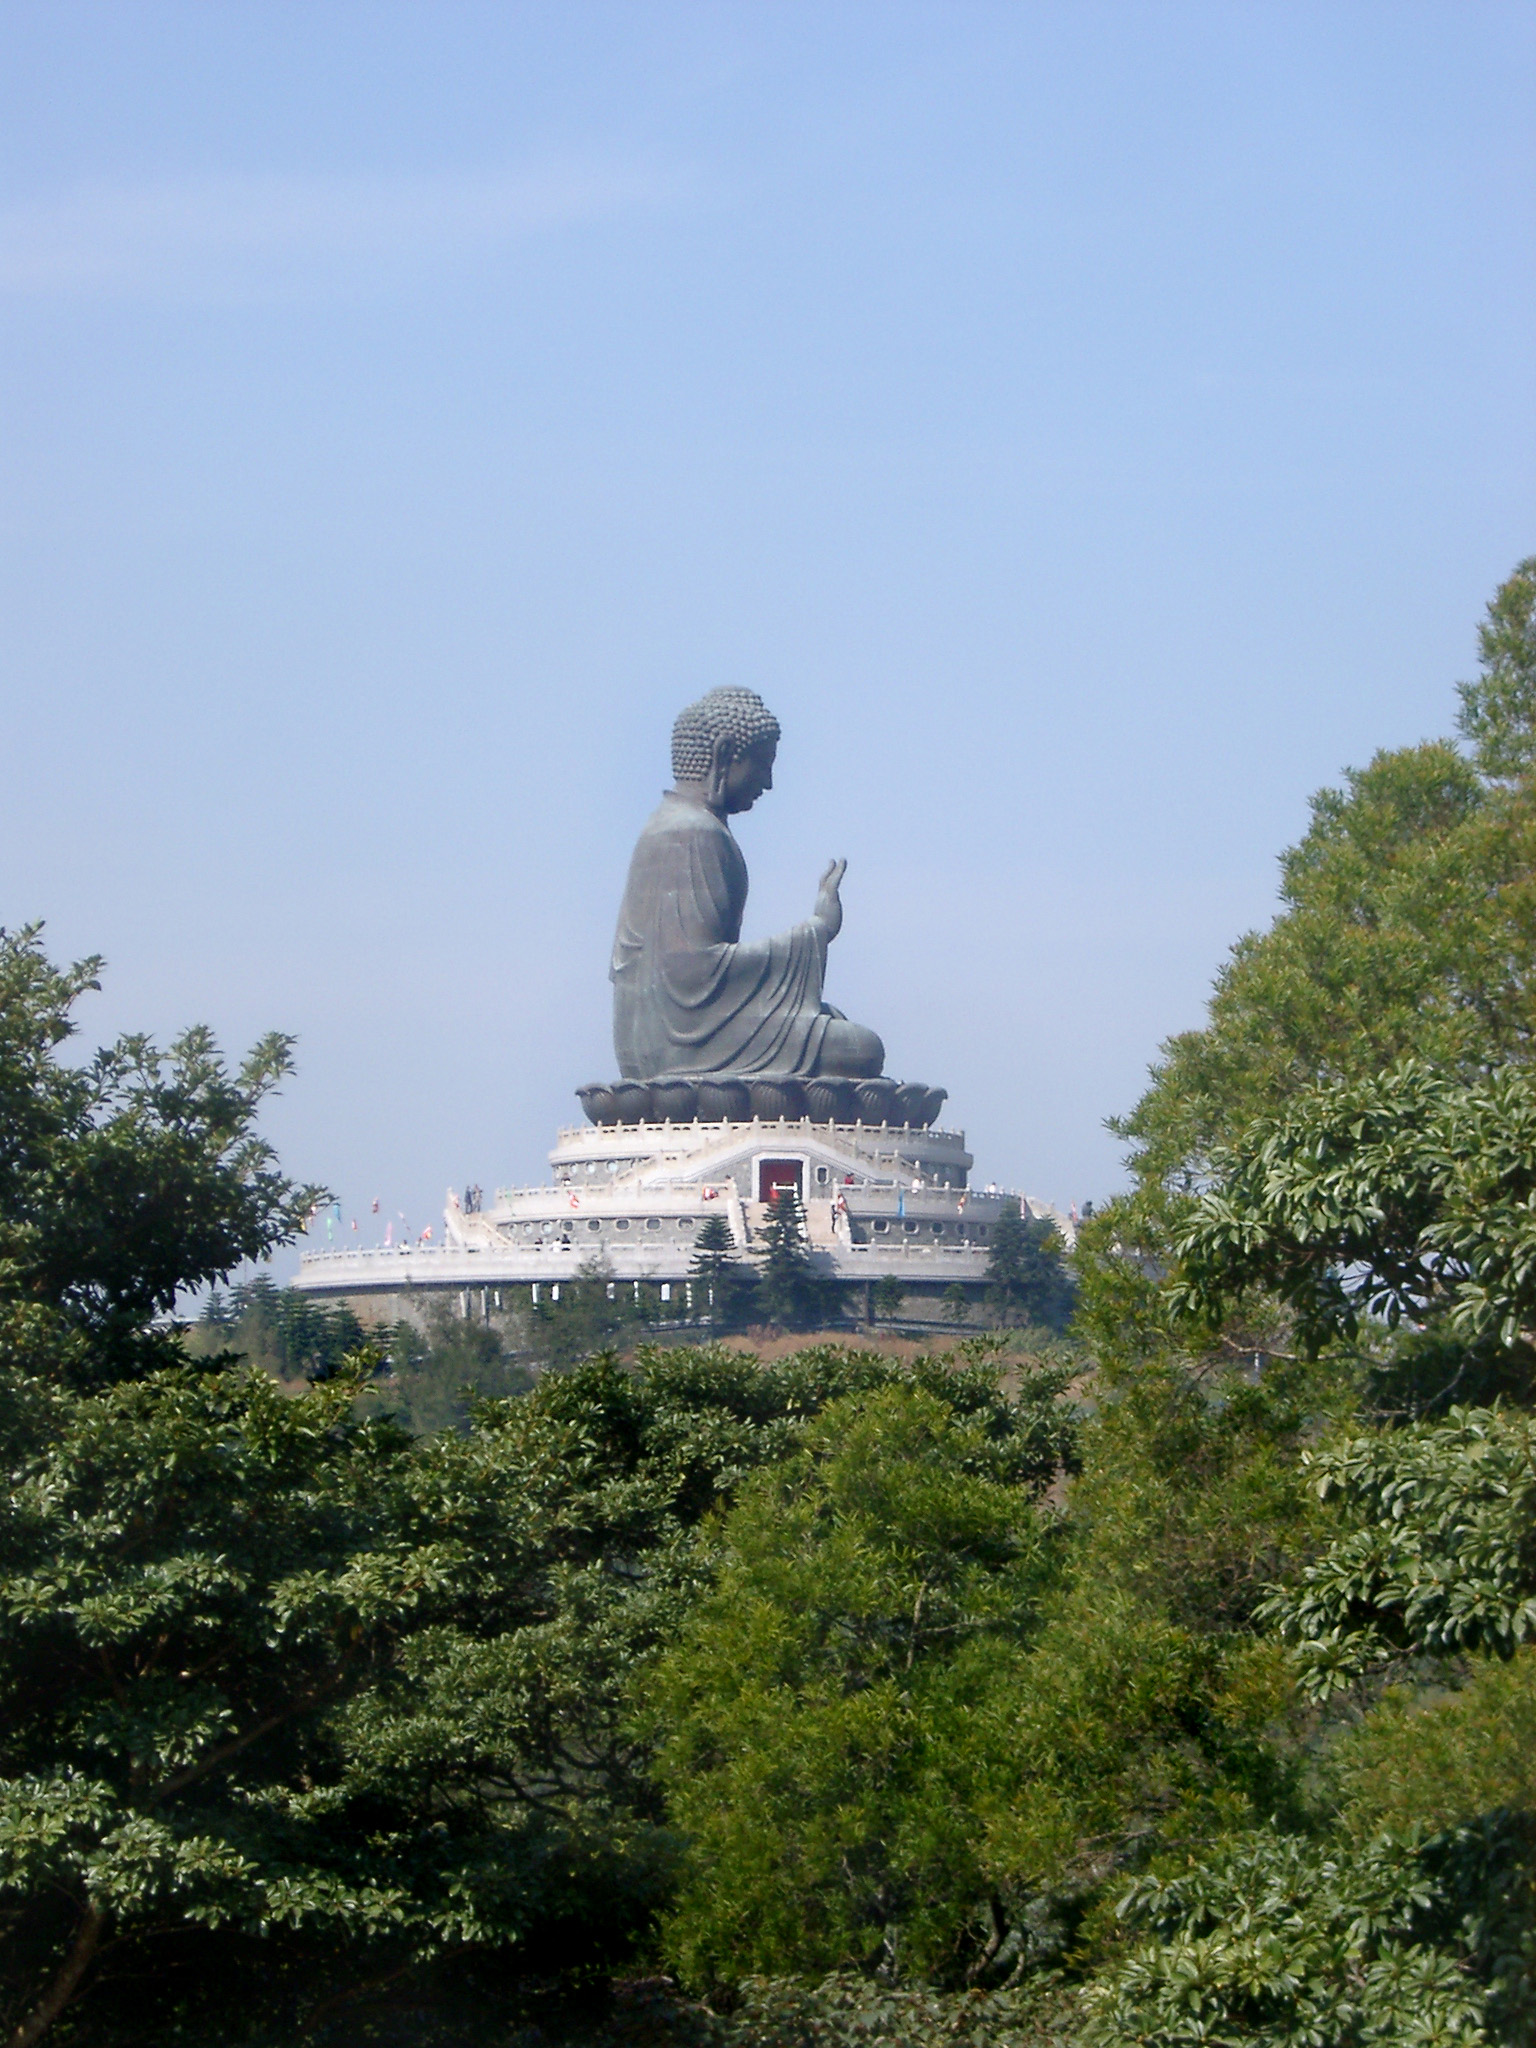 Famous Historic Tian Tan Buddha Sculpture on Blue Sky Background. Captured in Side View.